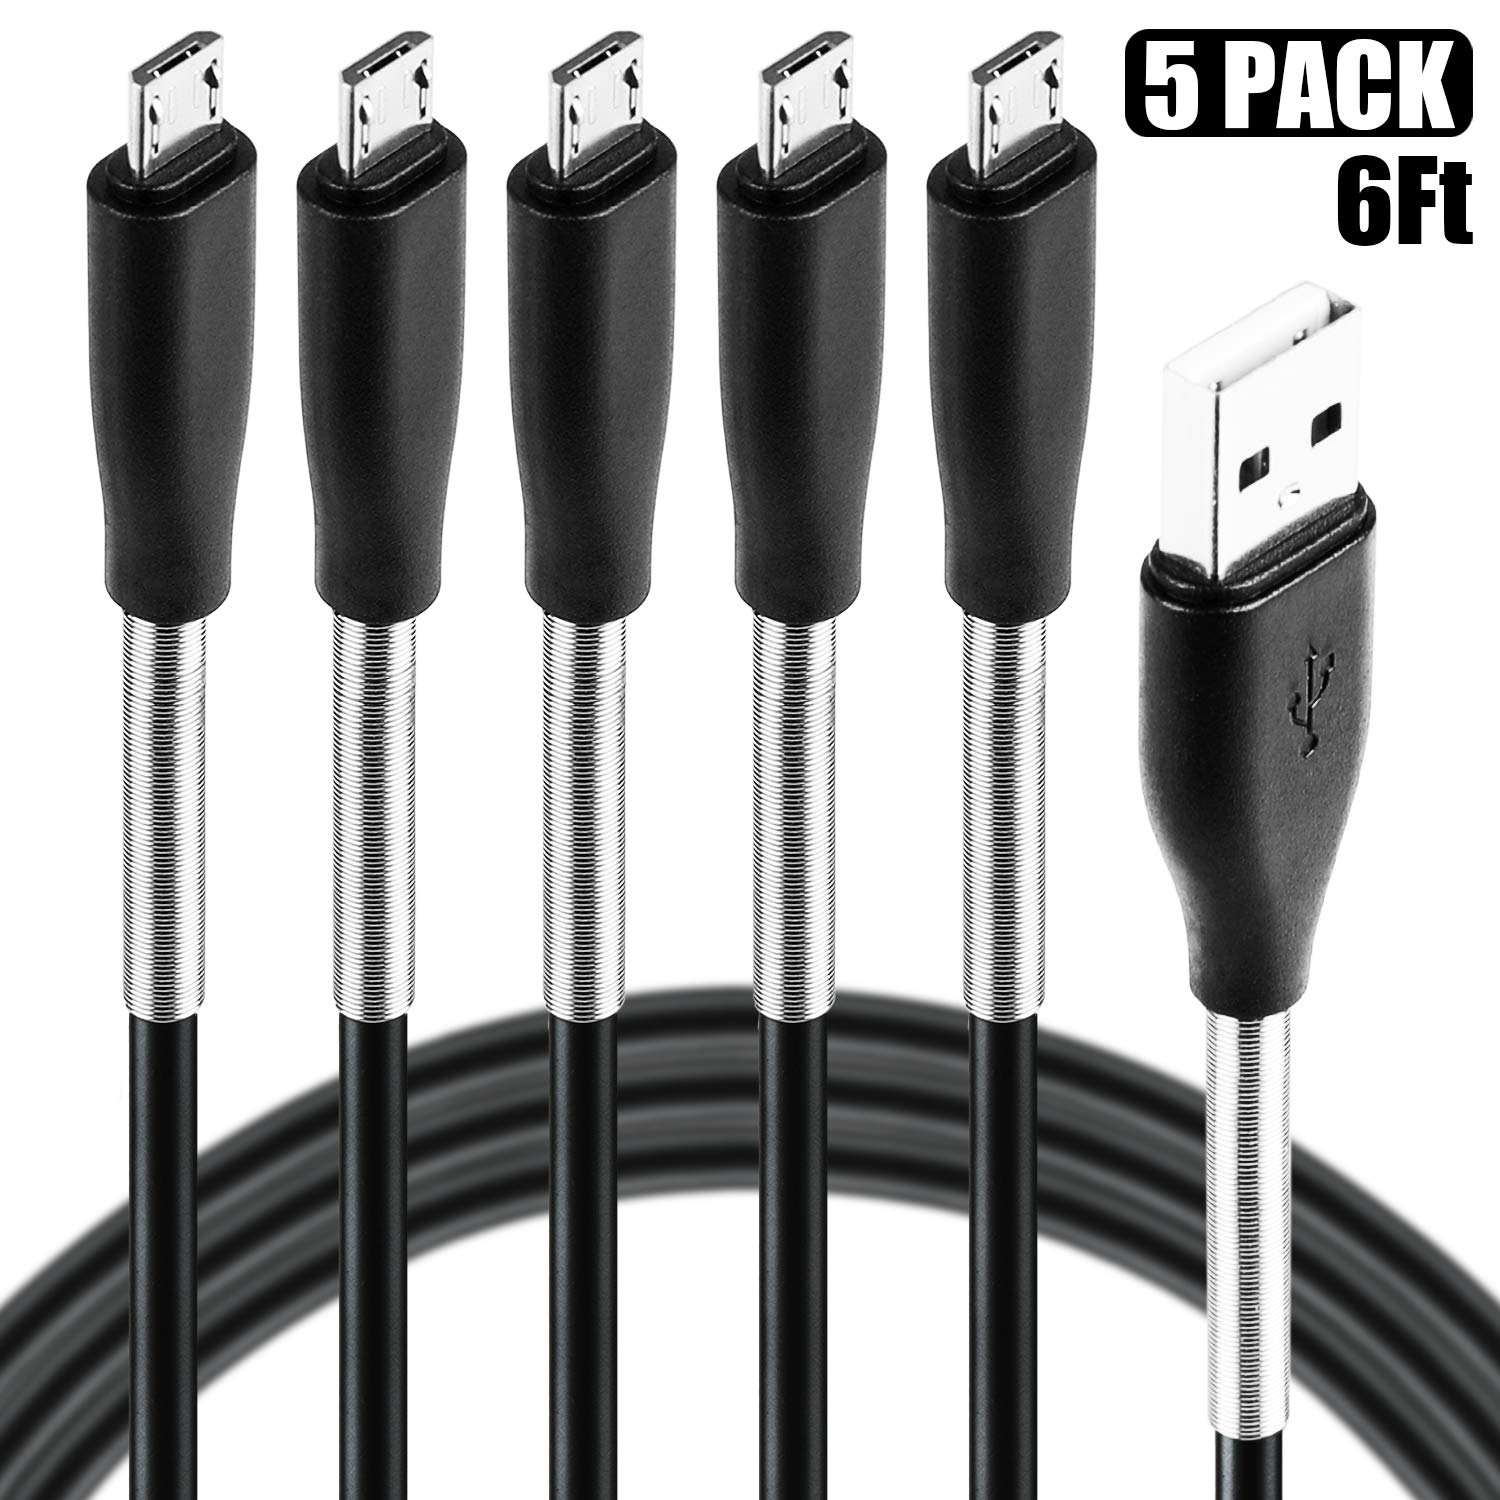 Micro USB Cable 6ft, Cabepow 5 Pack Android Charger Cable Spring Protection High Speed Data and Charging Android Charger Cord for Samsung Galaxy S7 Edge S6 S5,Note 5 4,LG G4 Android Phone